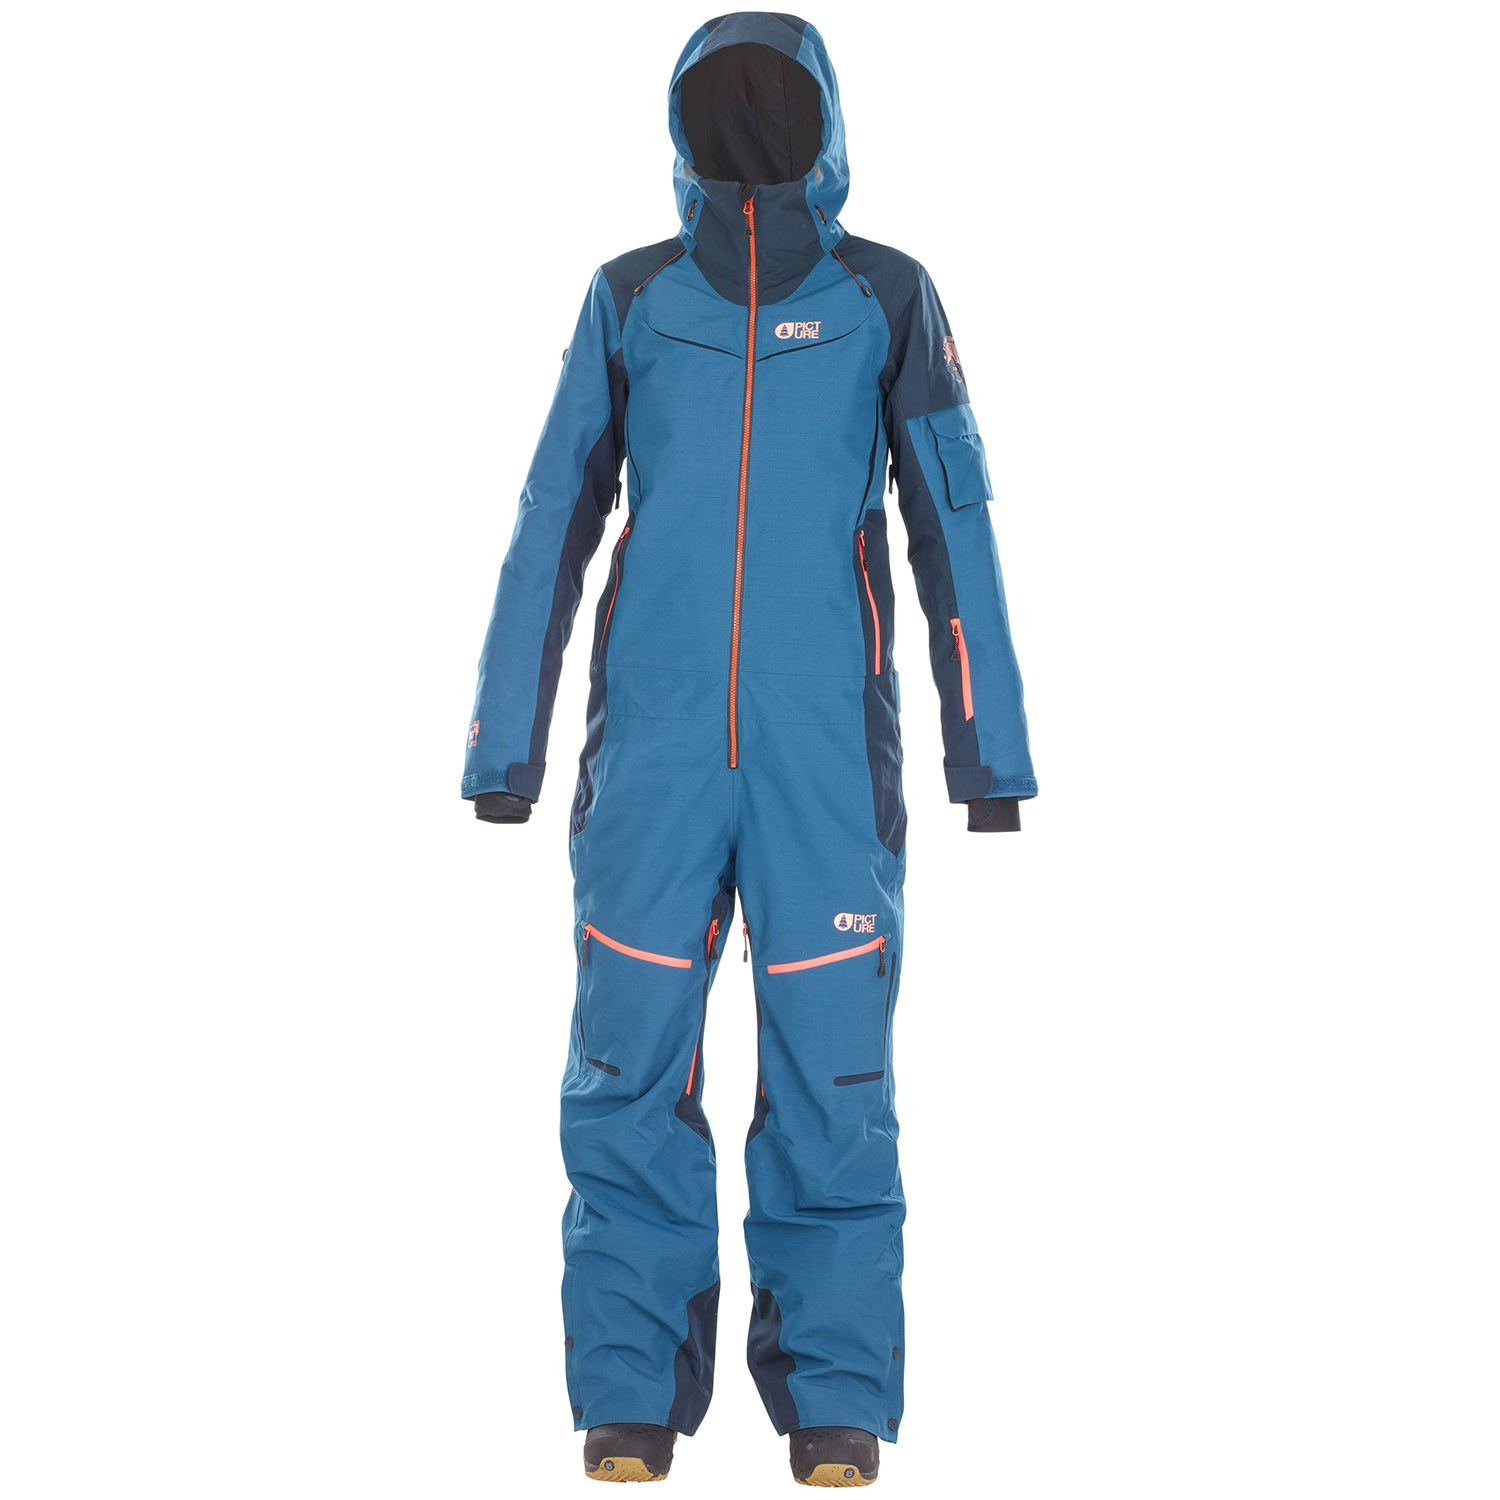 Womens Snow Suit One Piece >> Picture Organic Xena One Piece Suit Women S Evo